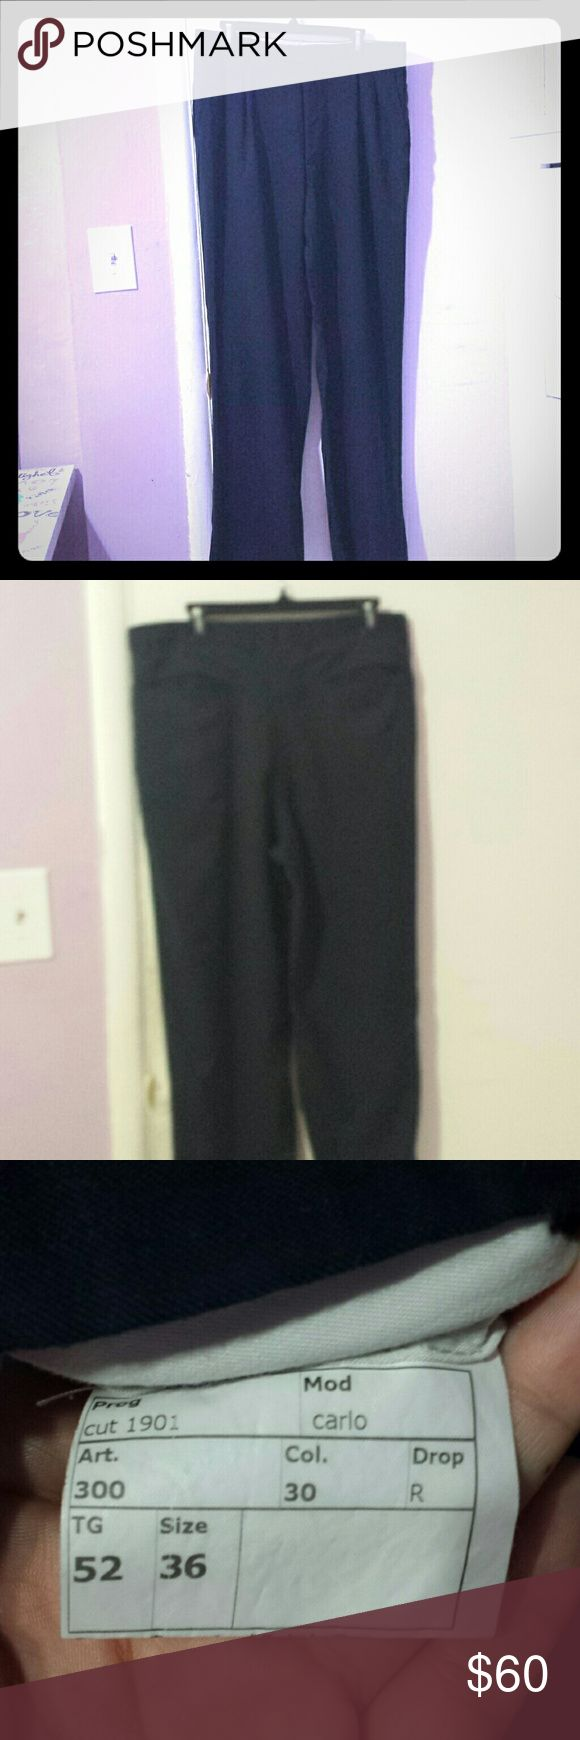 AUTHENTIC BURBERRY SLACKS FOR MEN. DARK BLUE BURBERRY GOING OUT SLACKS FOR MEN WITH PLEADS. SIZE 36 W BY 45 IN IN LENGTH. BUT HAS ABOUT AN EXTRA 2 INCHES INCASE YOU NEED MORE LENGTH. NEW CONDITION. Burberry Pants Dress